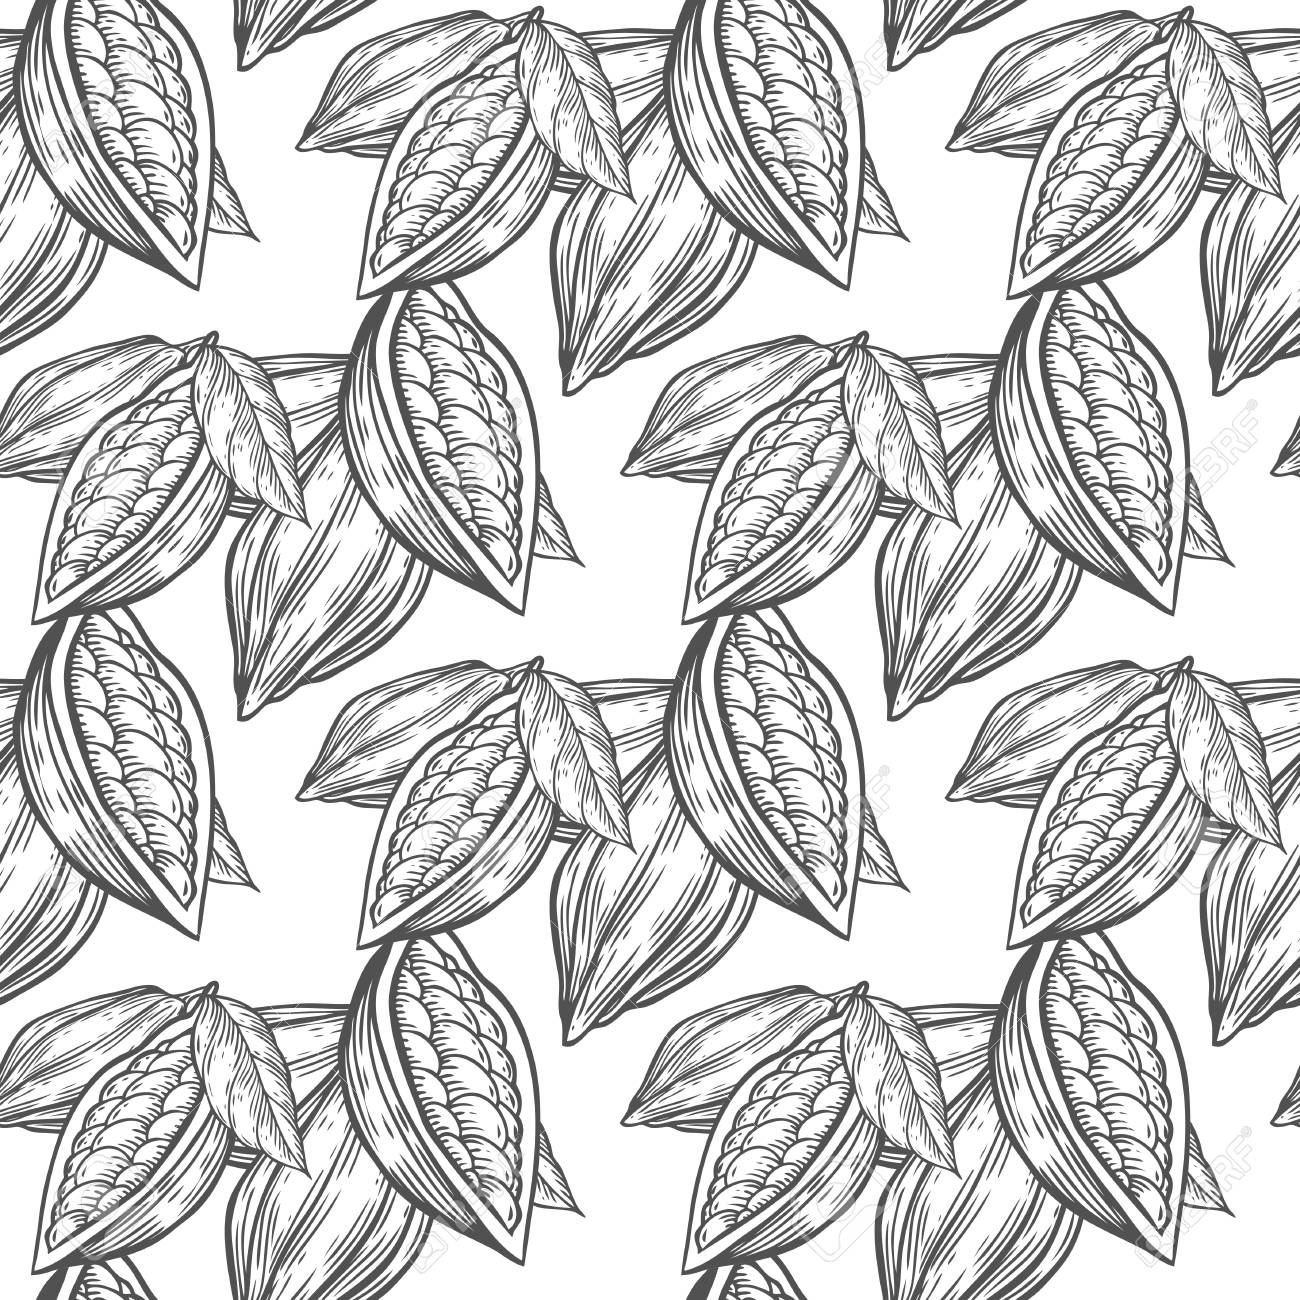 1300x1300 Cocoa, Cacao Beans Hand Drawn Sketch Seamless Vector Pattern